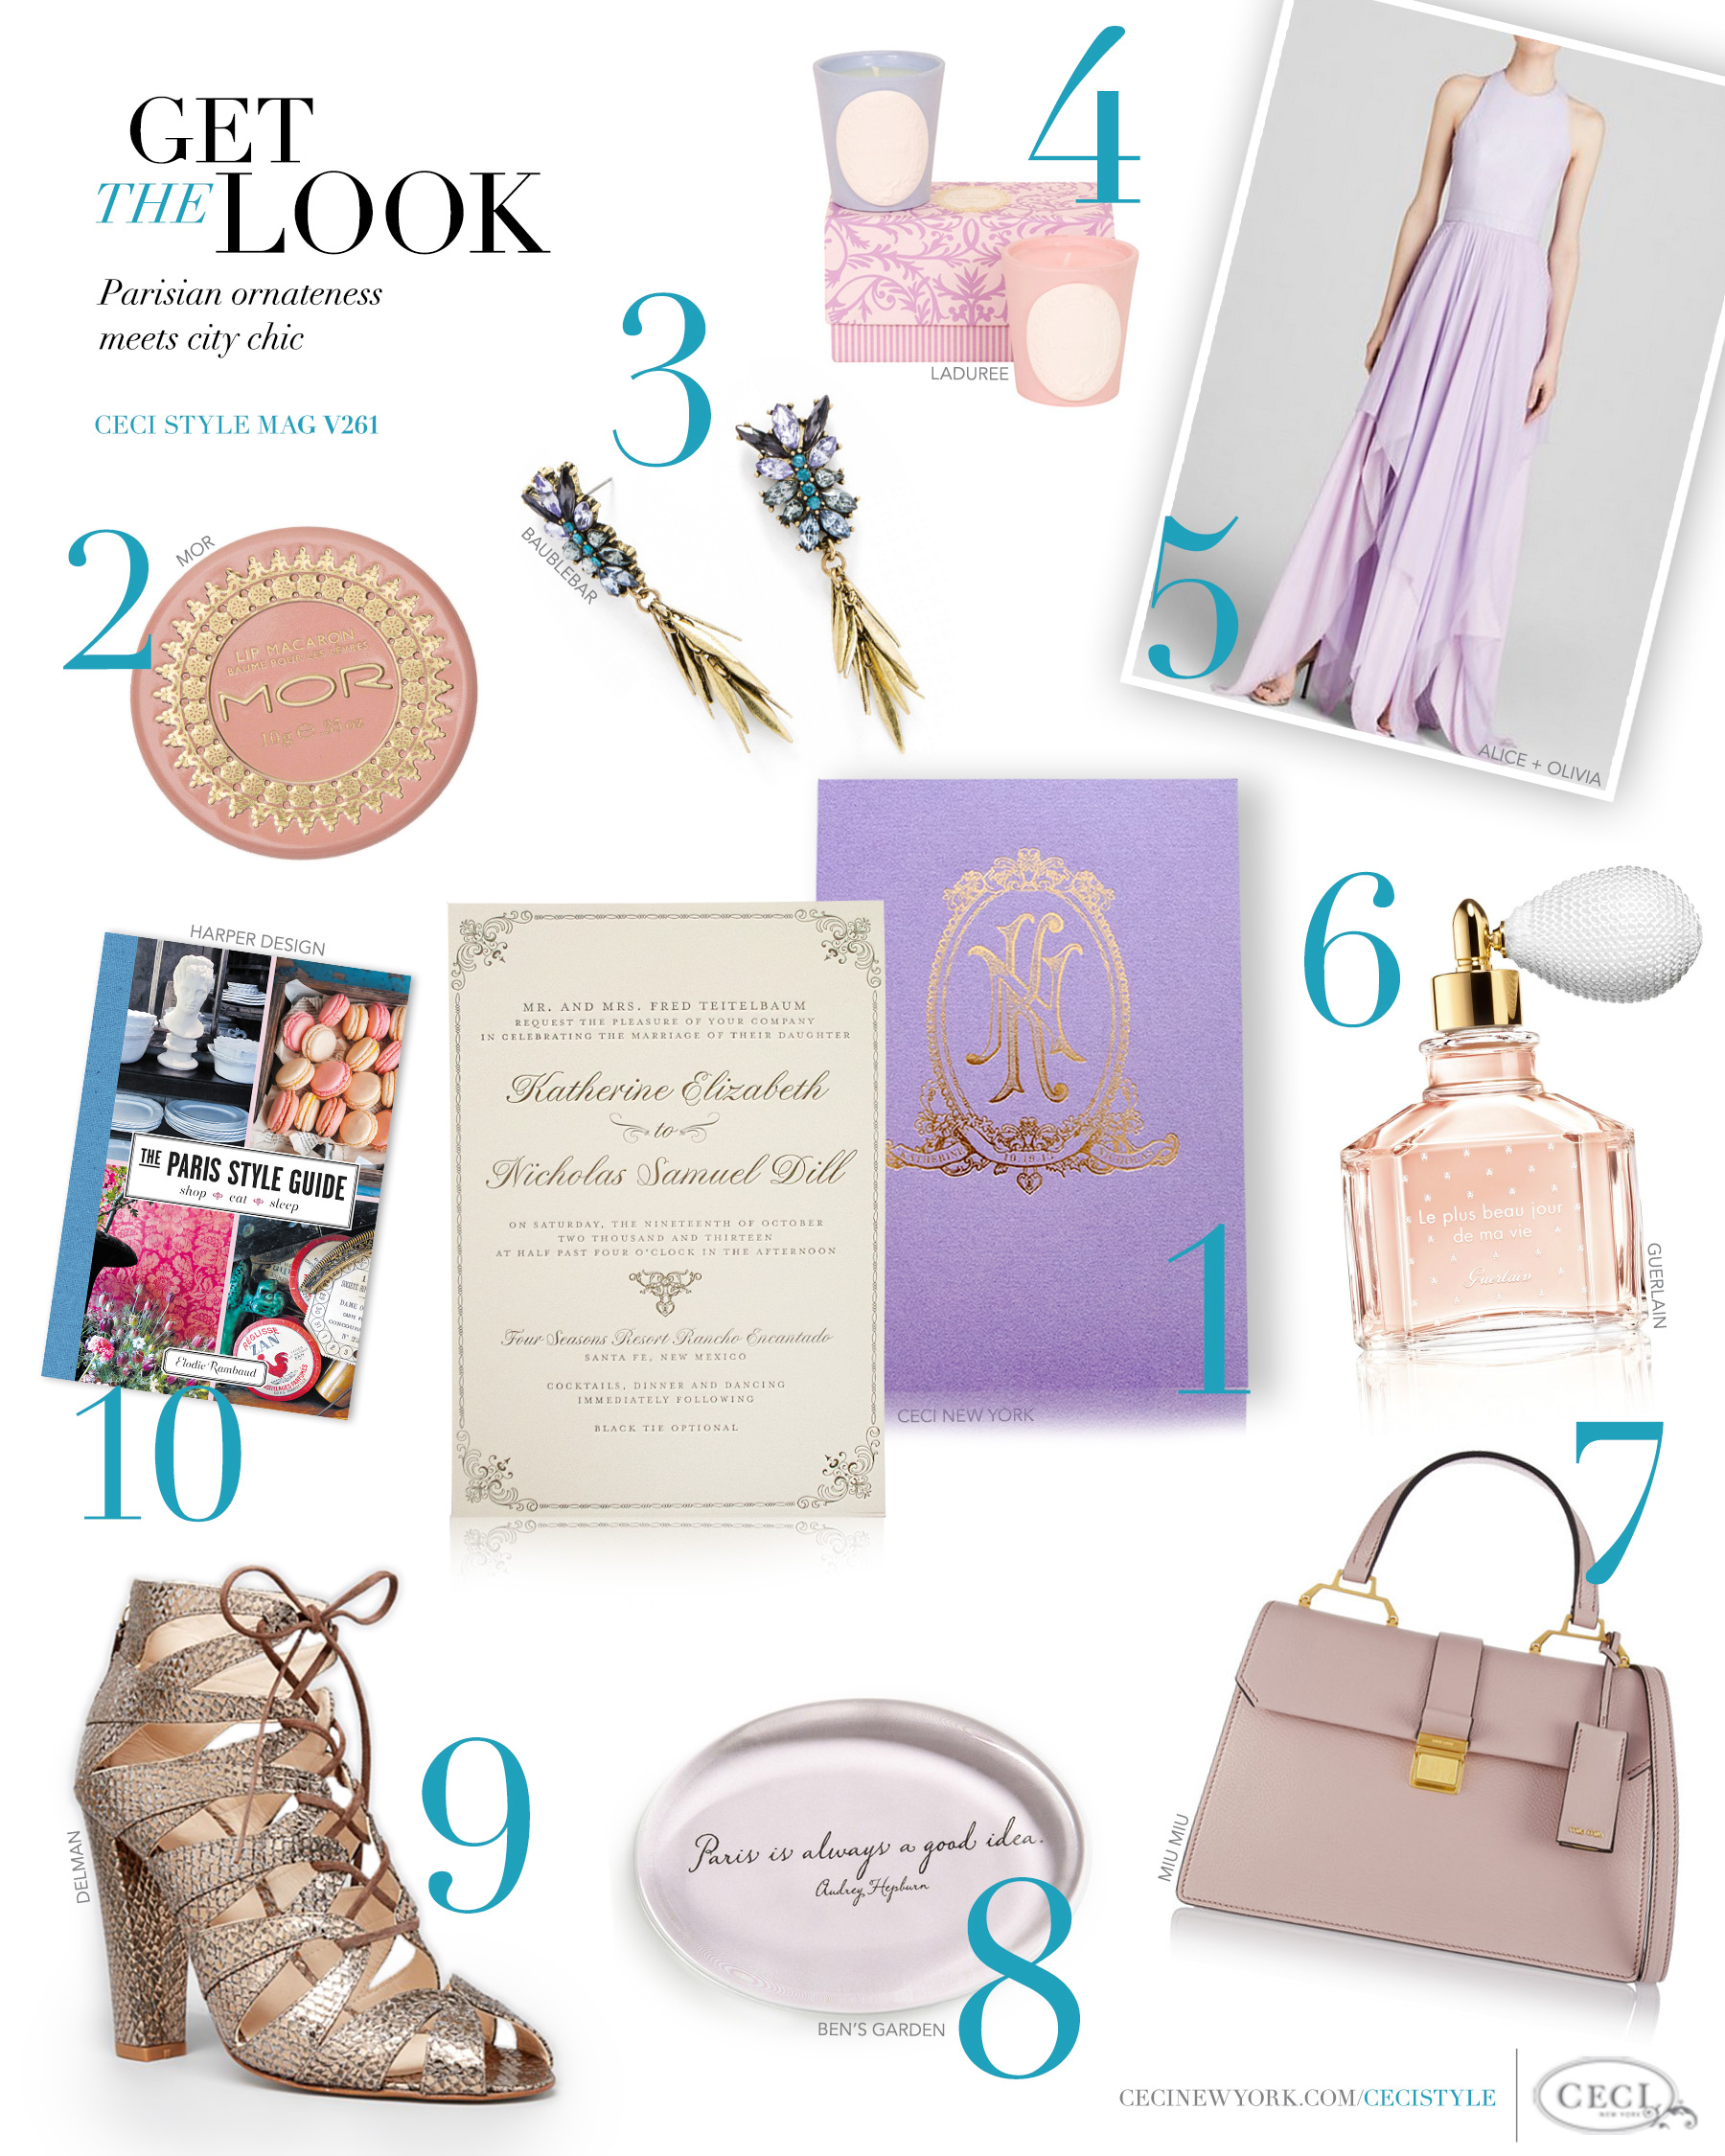 CeciStyle Magazine v261: Get The Look - Couture Culture - Parisian ornateness meets city chic. - Luxury Wedding Invitations by Ceci New York - ceci new york, fashion, style, luxury wedding invitations, couture, custom wedding invitations, ceci johnson, mor, baublebar, laduree, alice + olivia, gown, guerlain, miu miu, delman, elodie rambaud